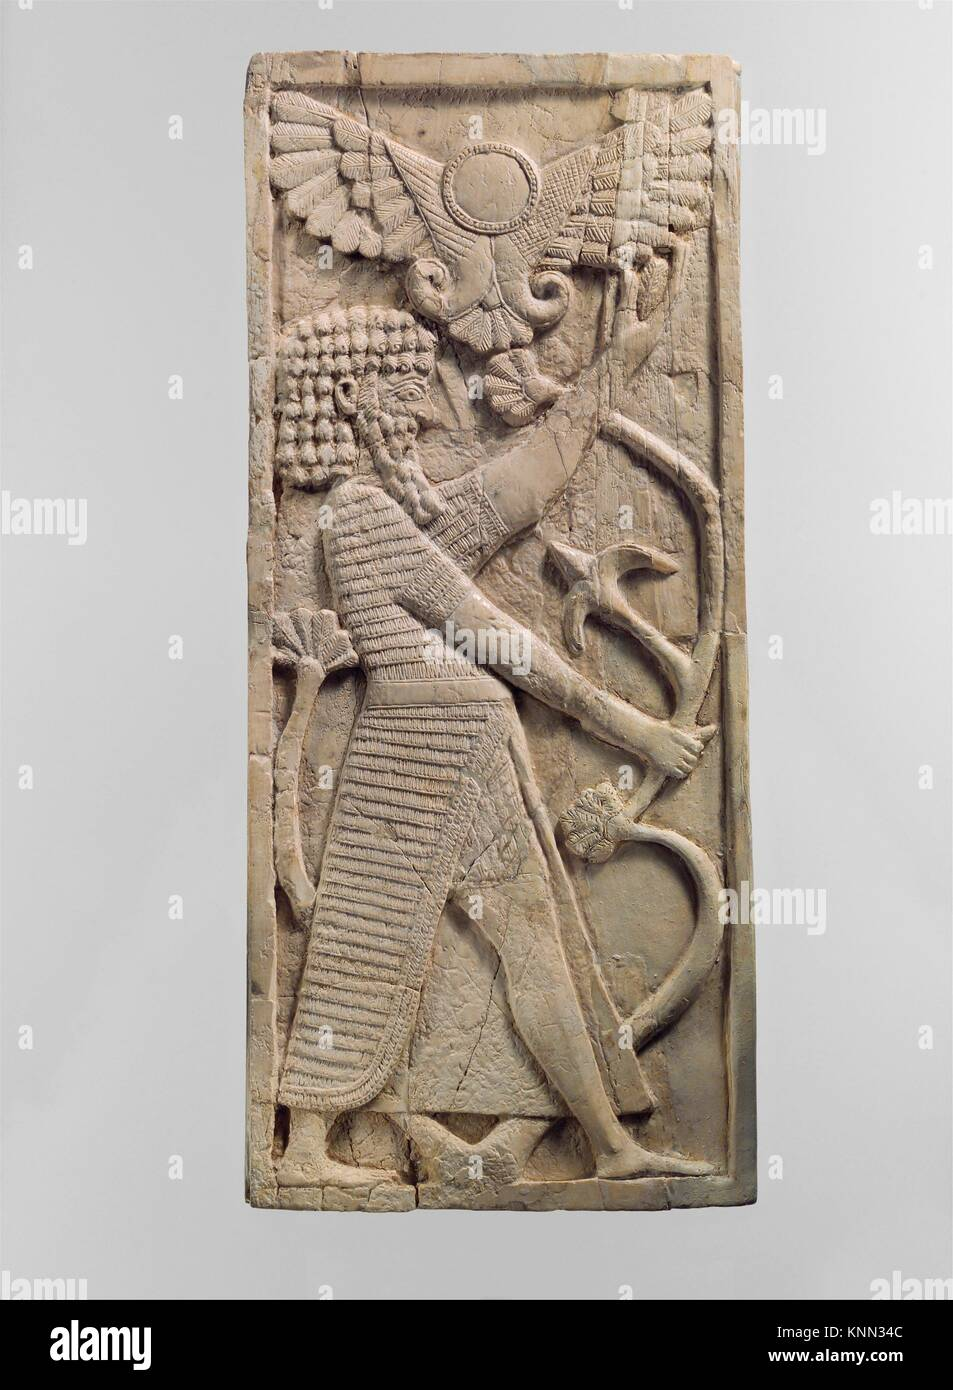 Furniture plaque carved in relief with a male figure grasping a